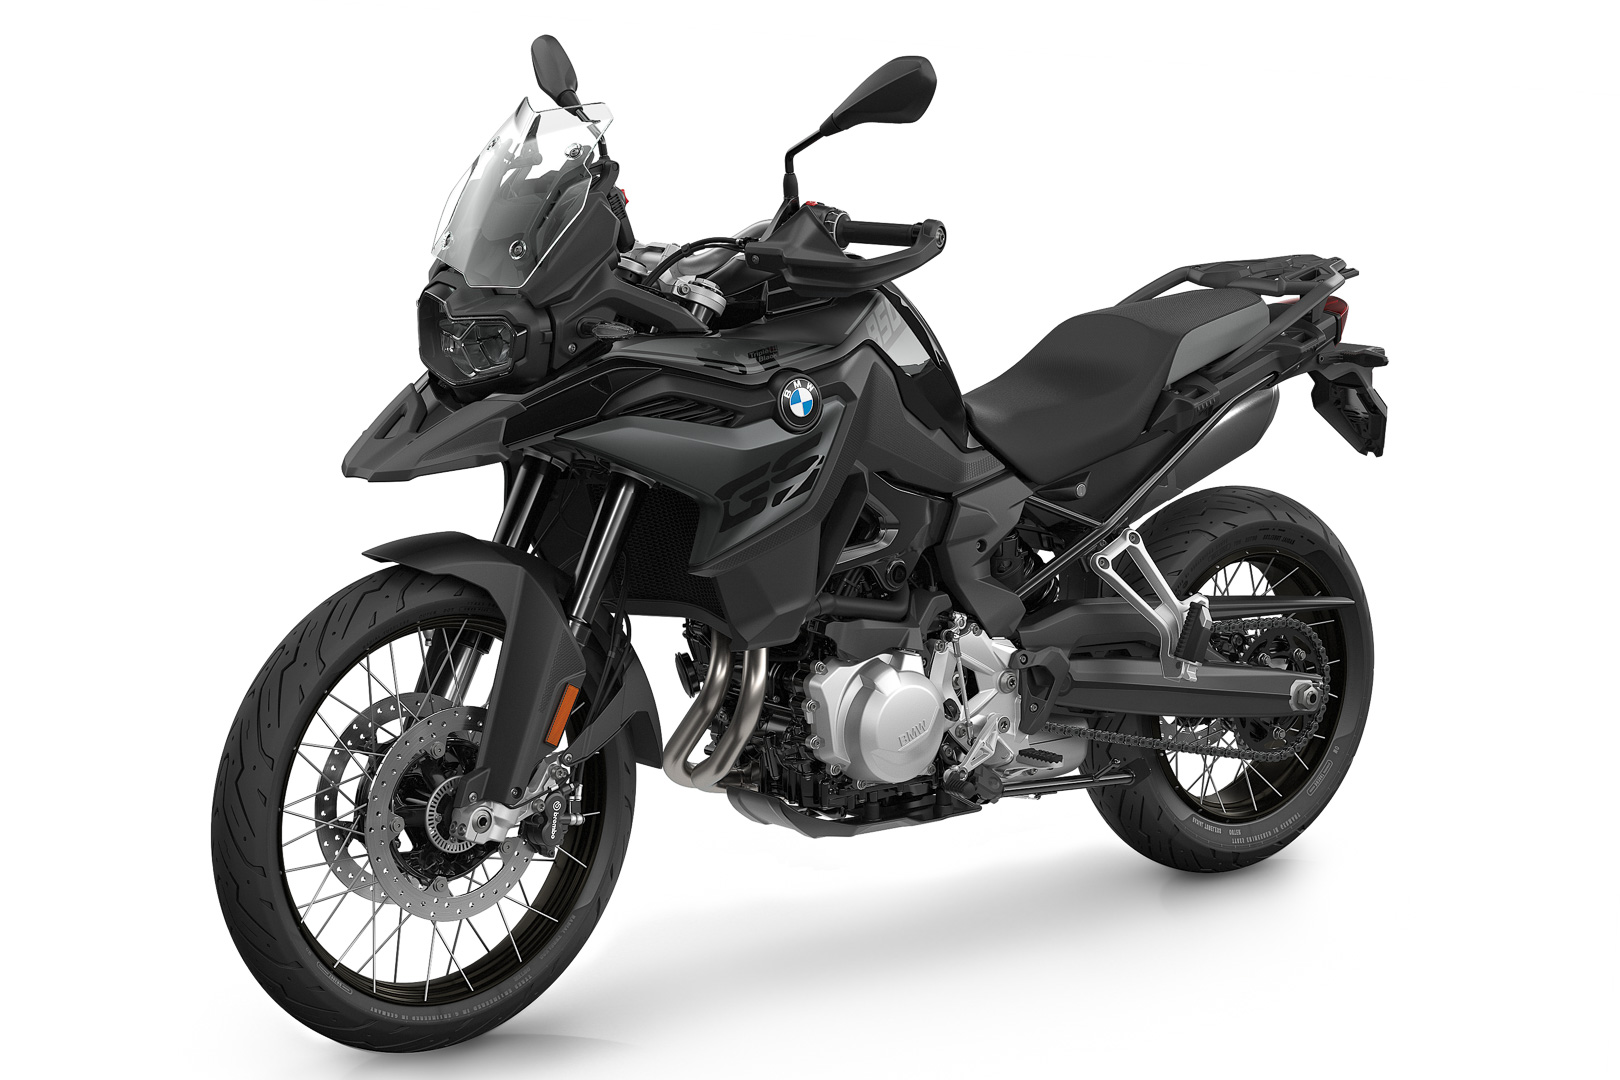 2022 BMW F 850 GS First Look: Price